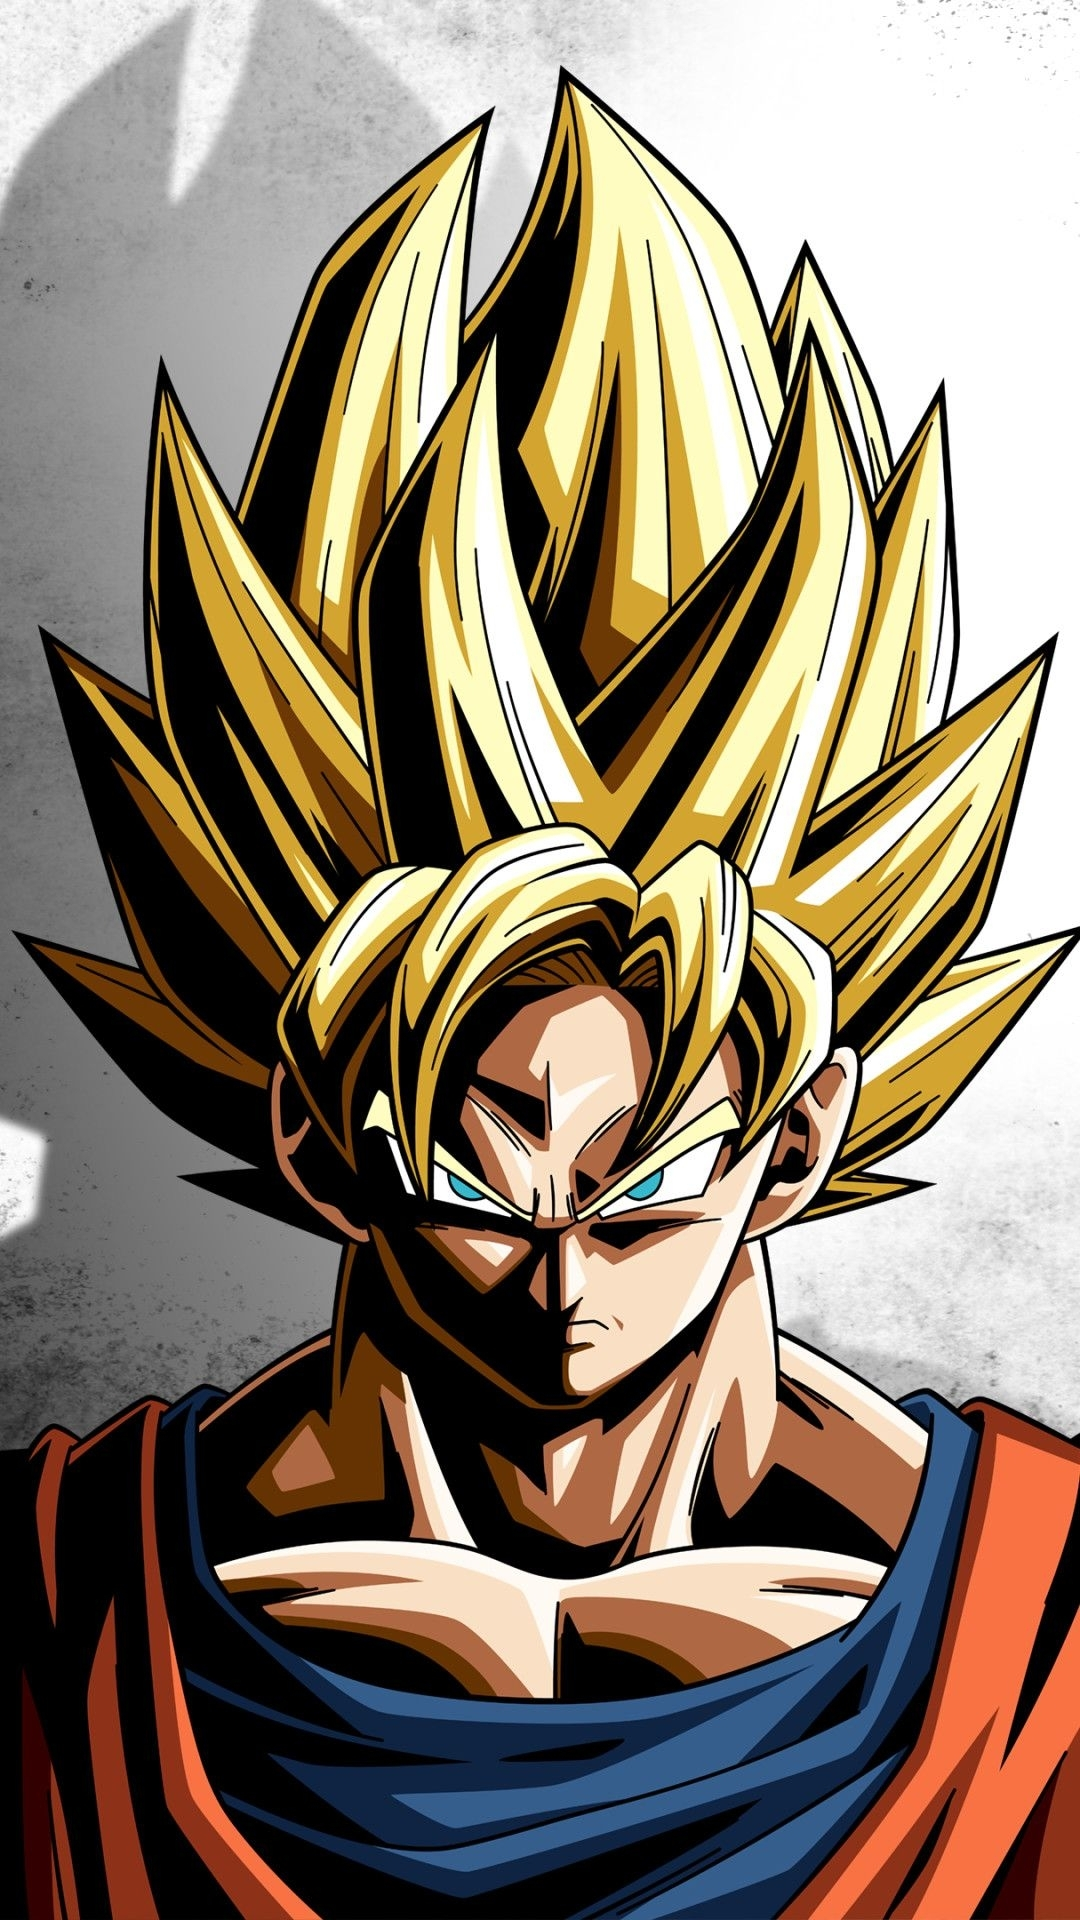 dragon ball z | anime iphone wallpapers | dbz | pinterest | sangoku